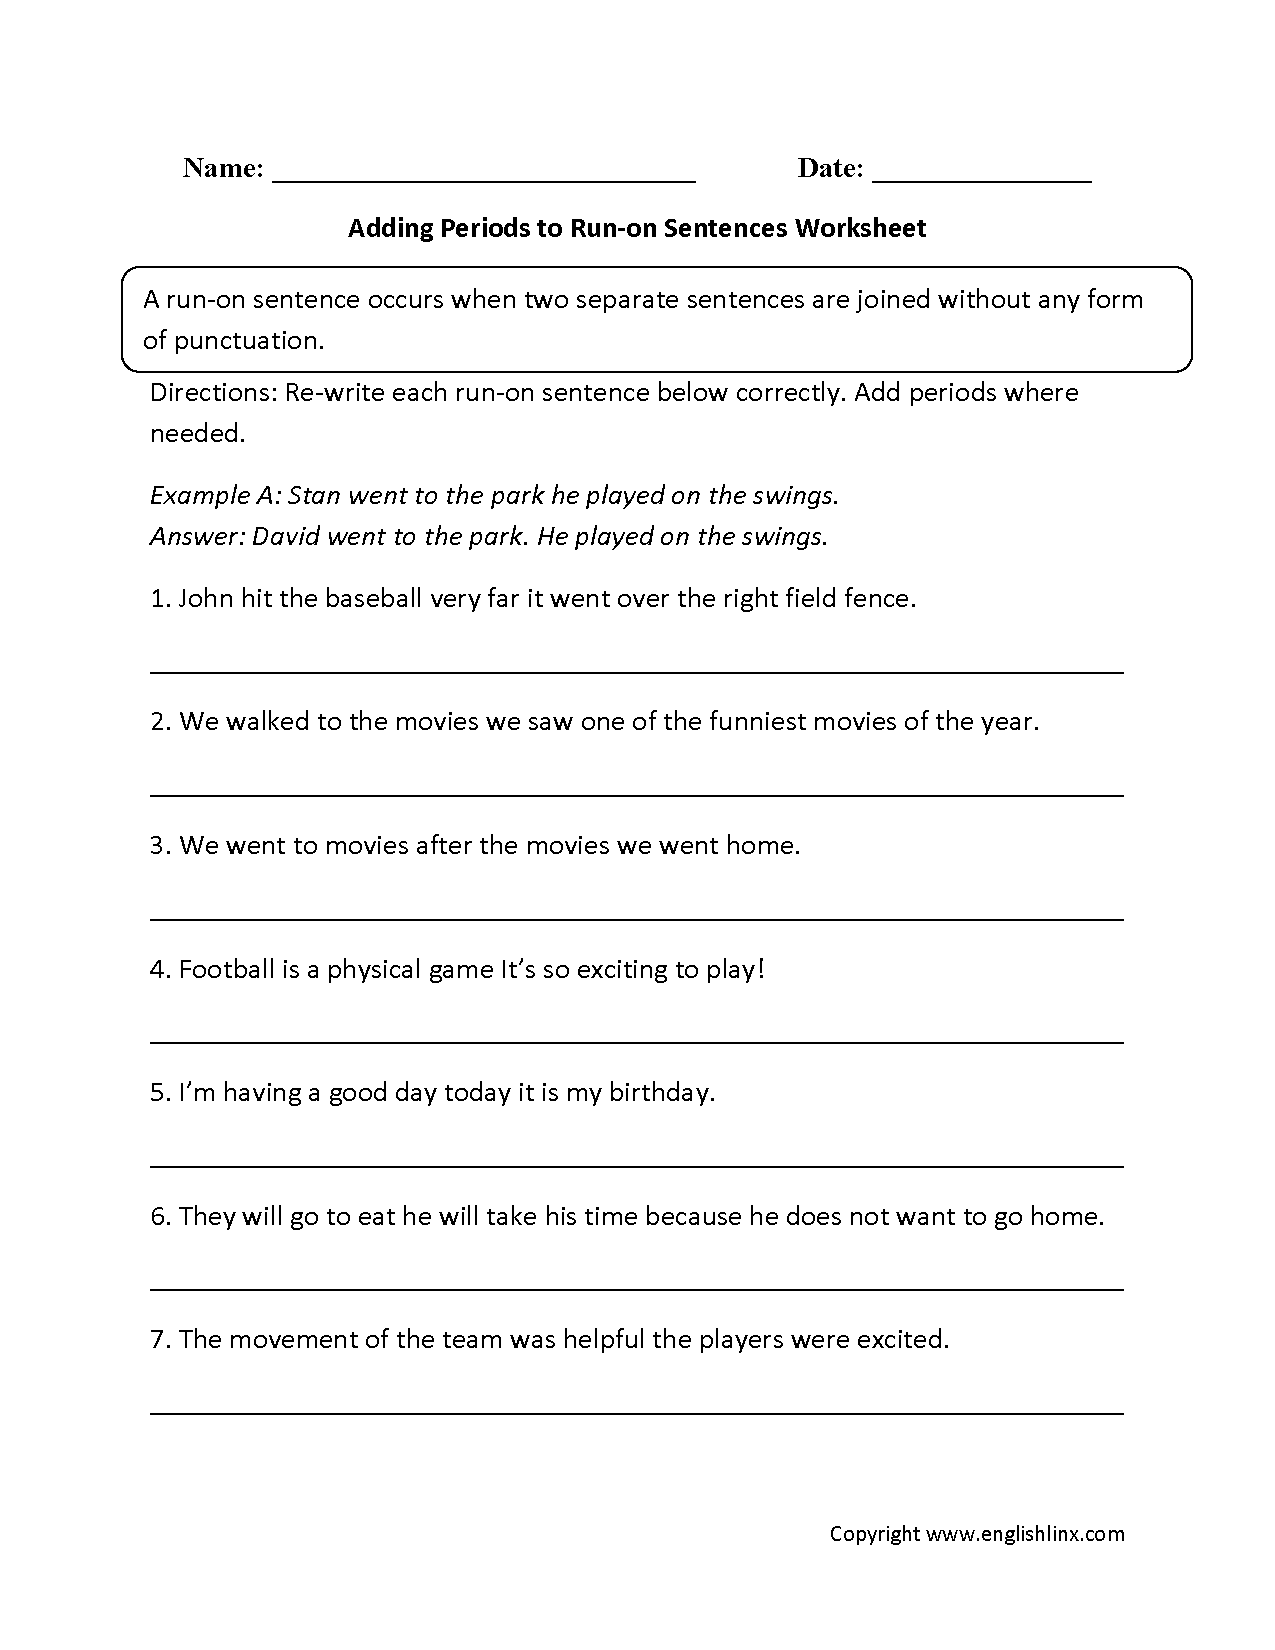 Adding Periods To Run On Sentences Worksheets